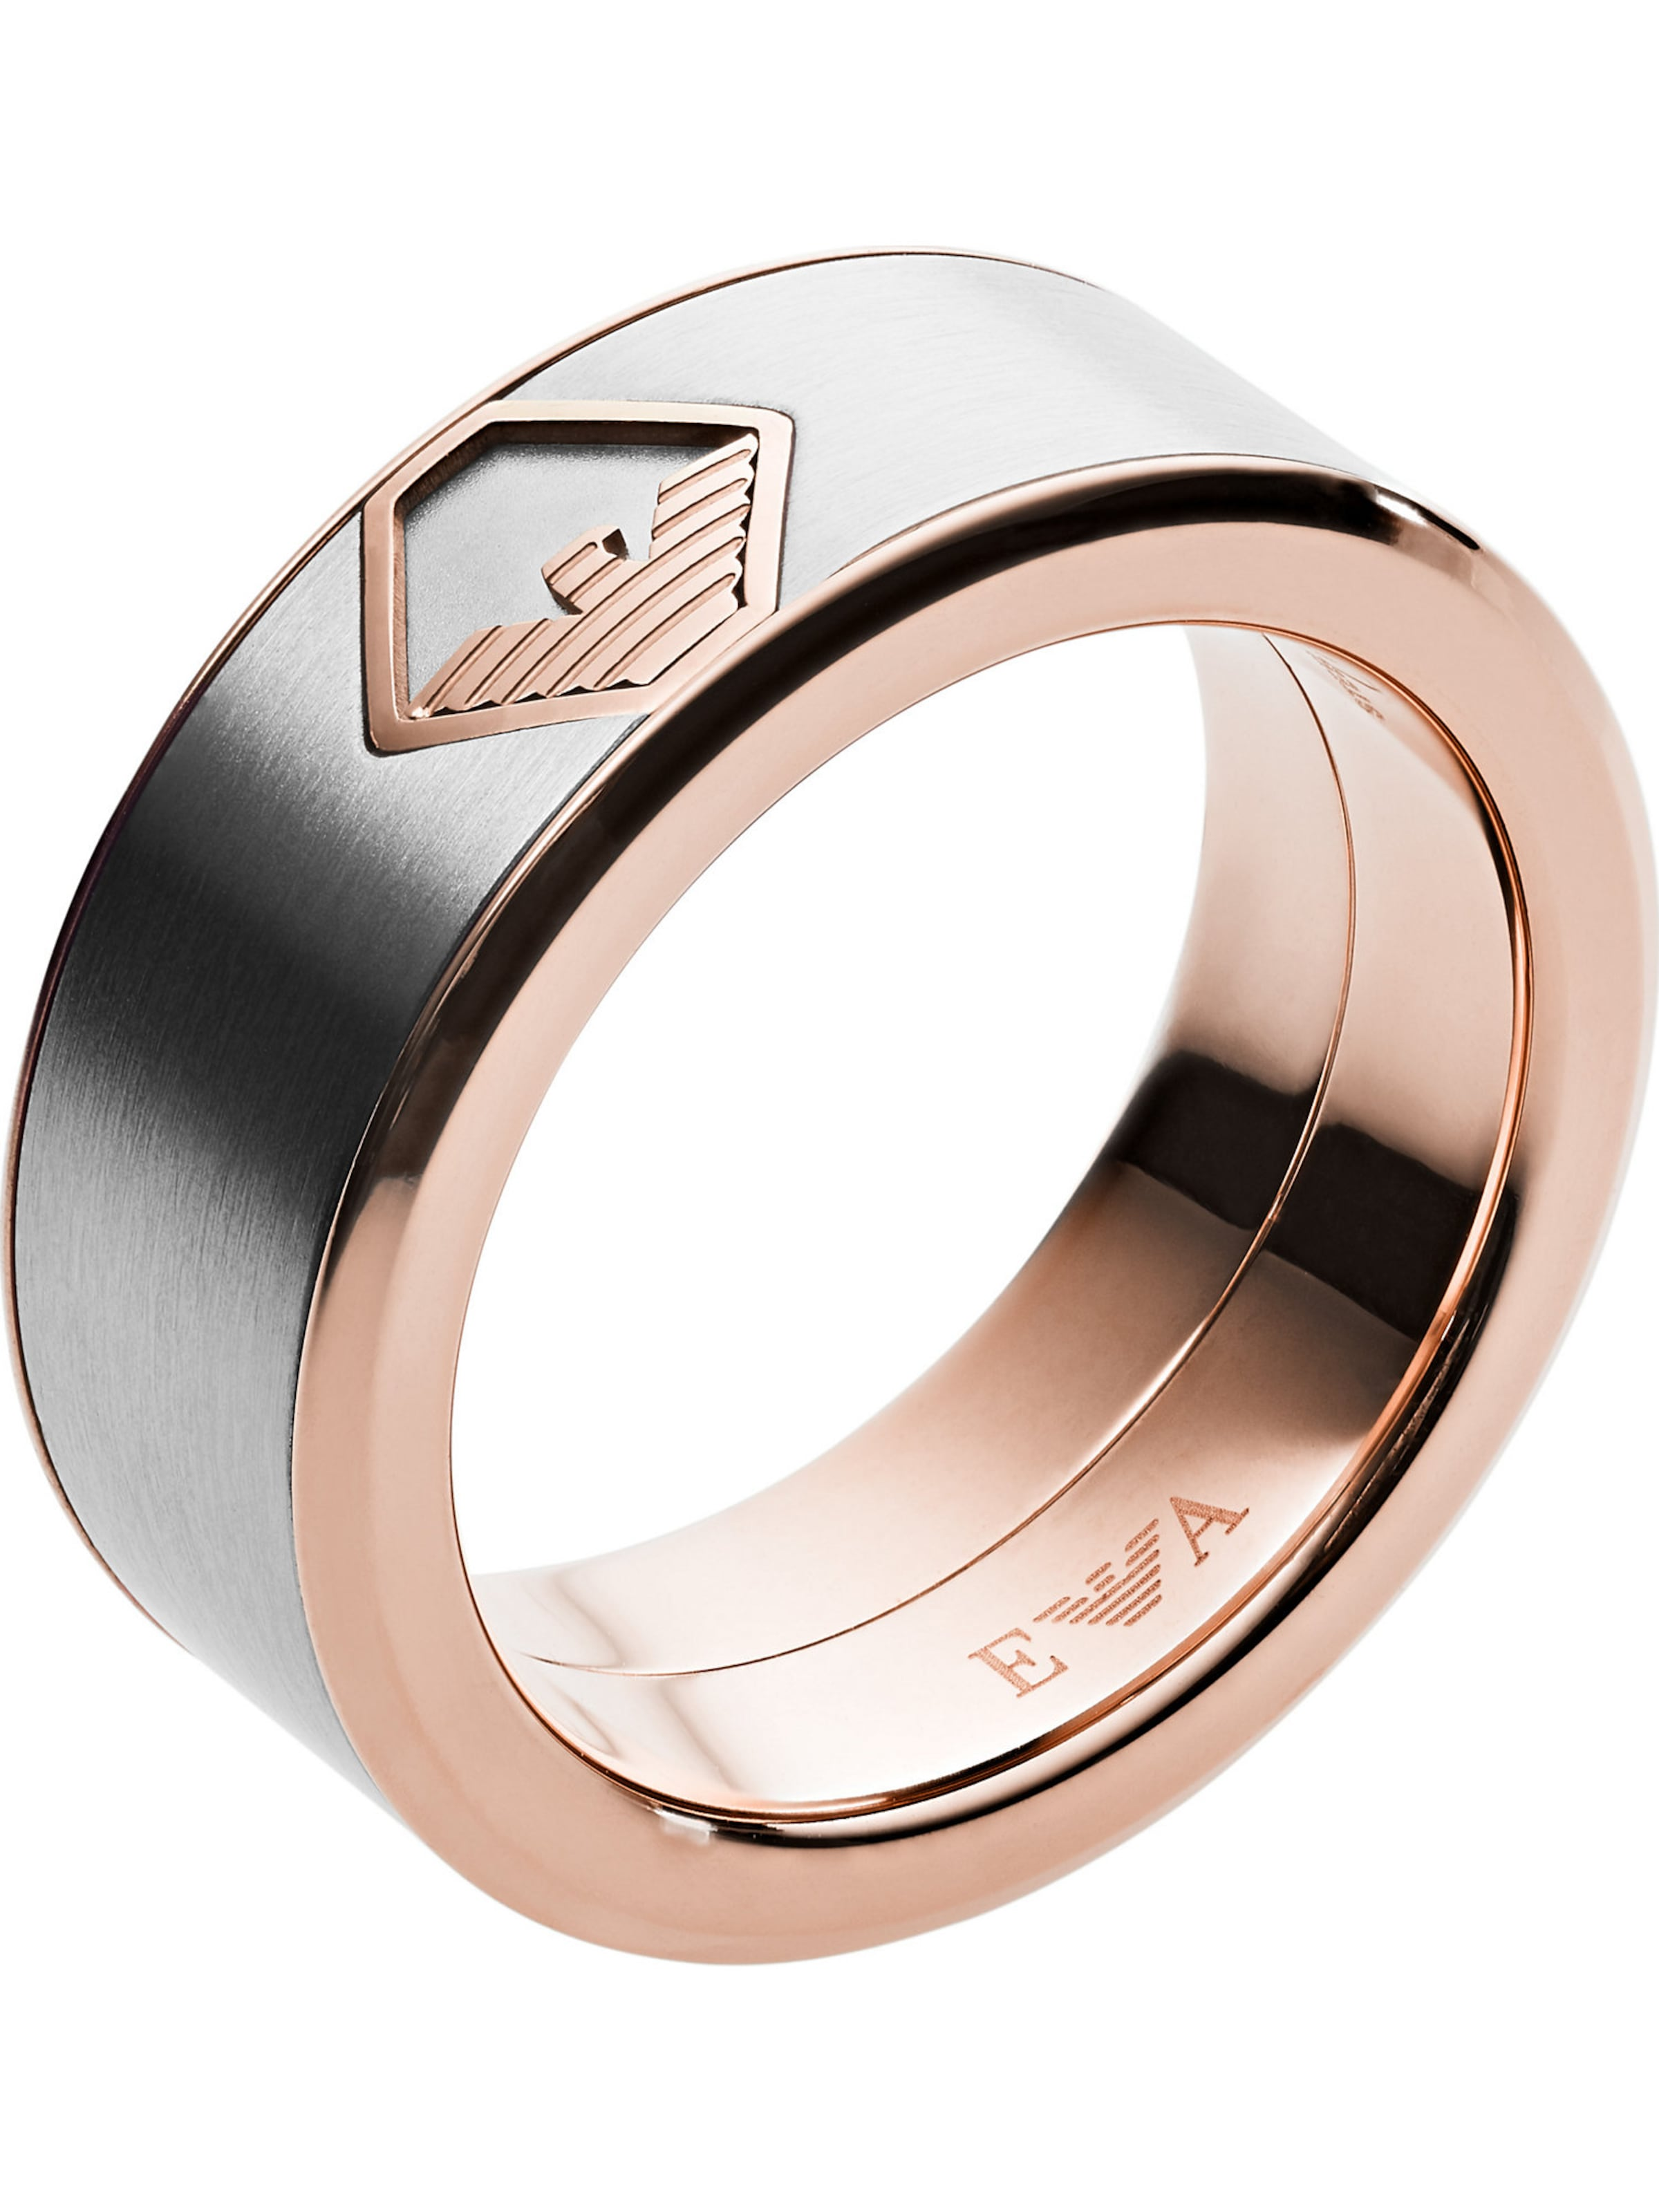 Emporio Armani In Emporio RosegoldSilber Ring Owm8n0vN